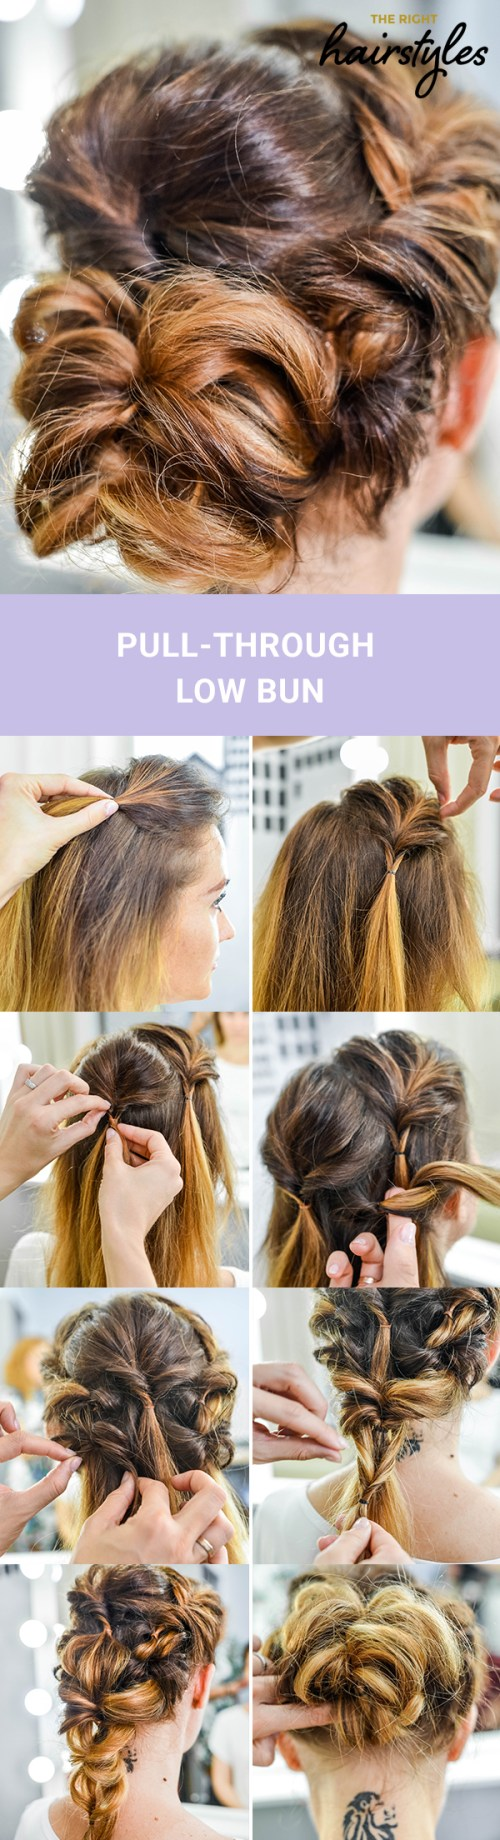 Pull-Through Low Bun